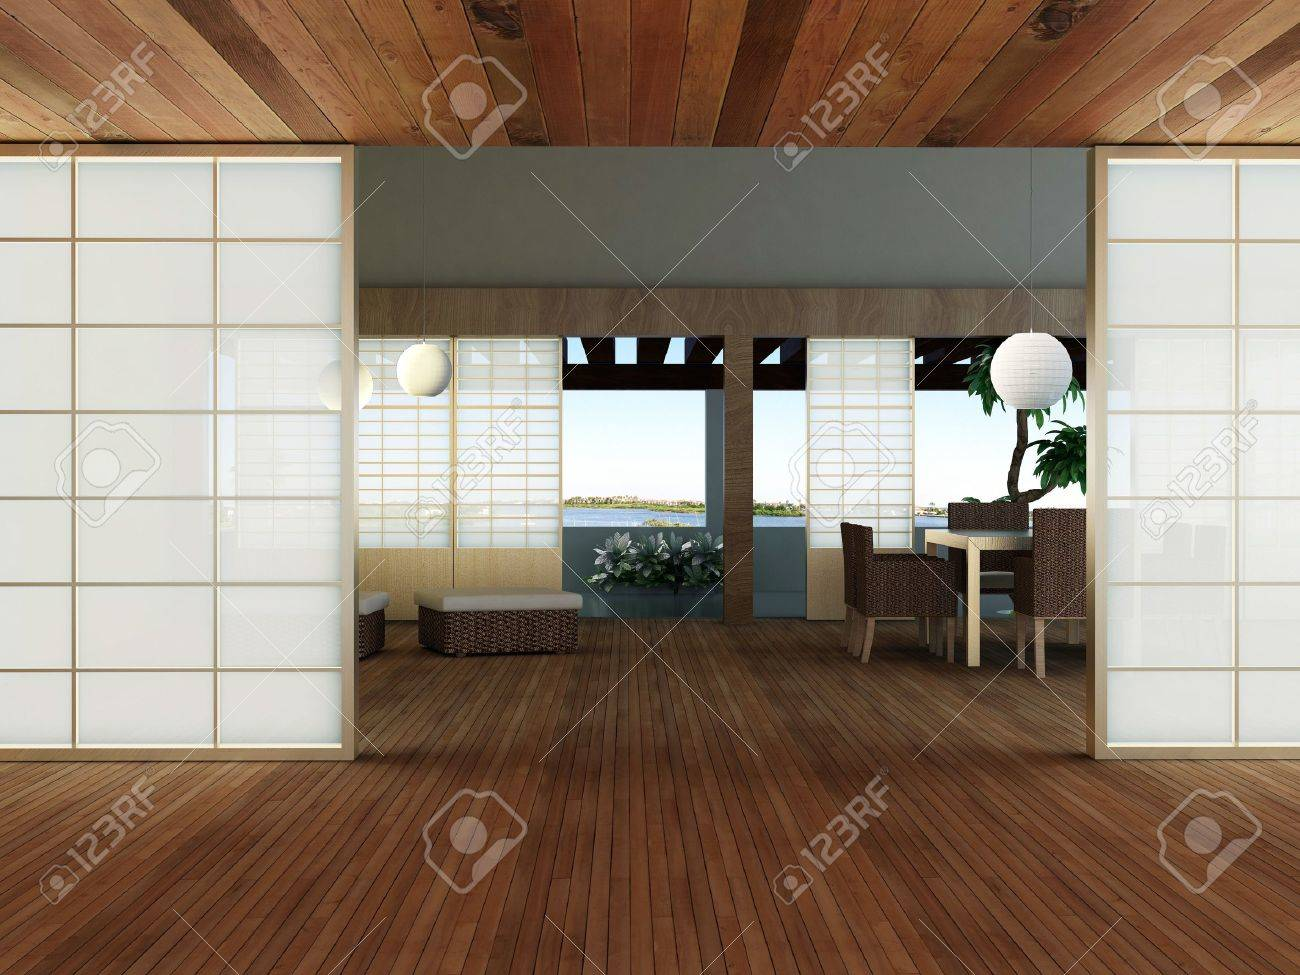 Japanese Style Architecture japanese style architecture images & stock pictures. royalty free